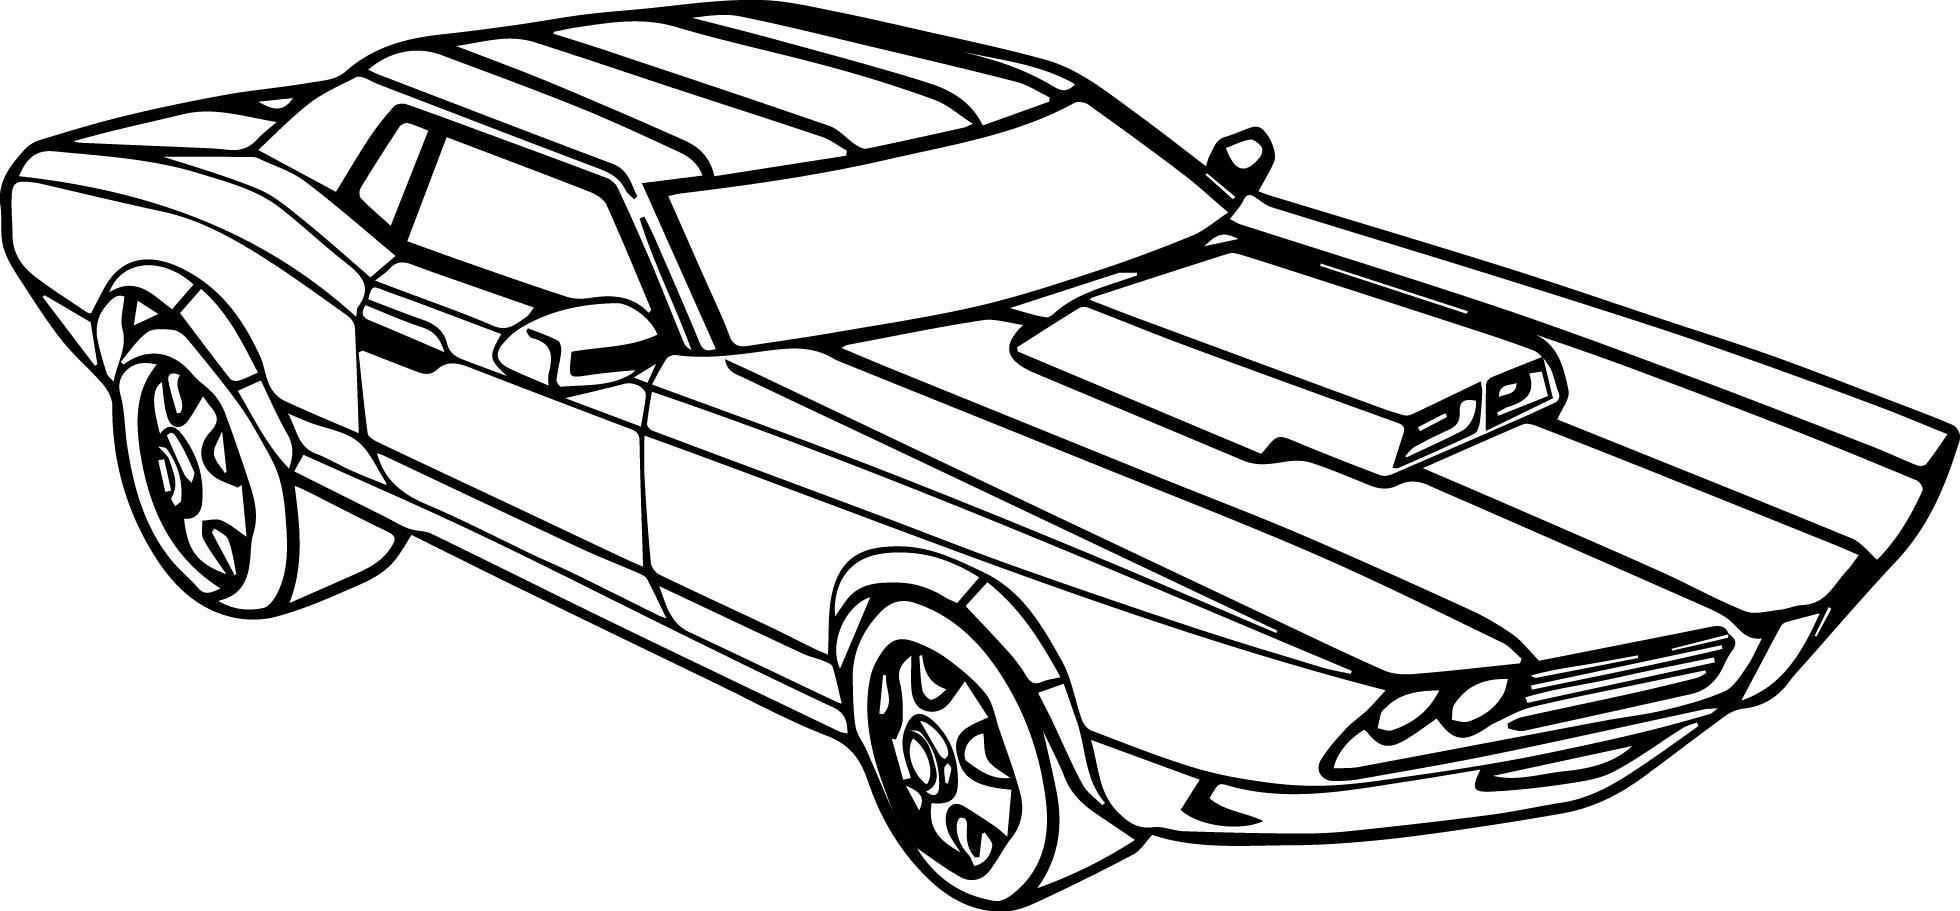 38 Racecar Coloring Pages Pdf in 2020 Cars coloring